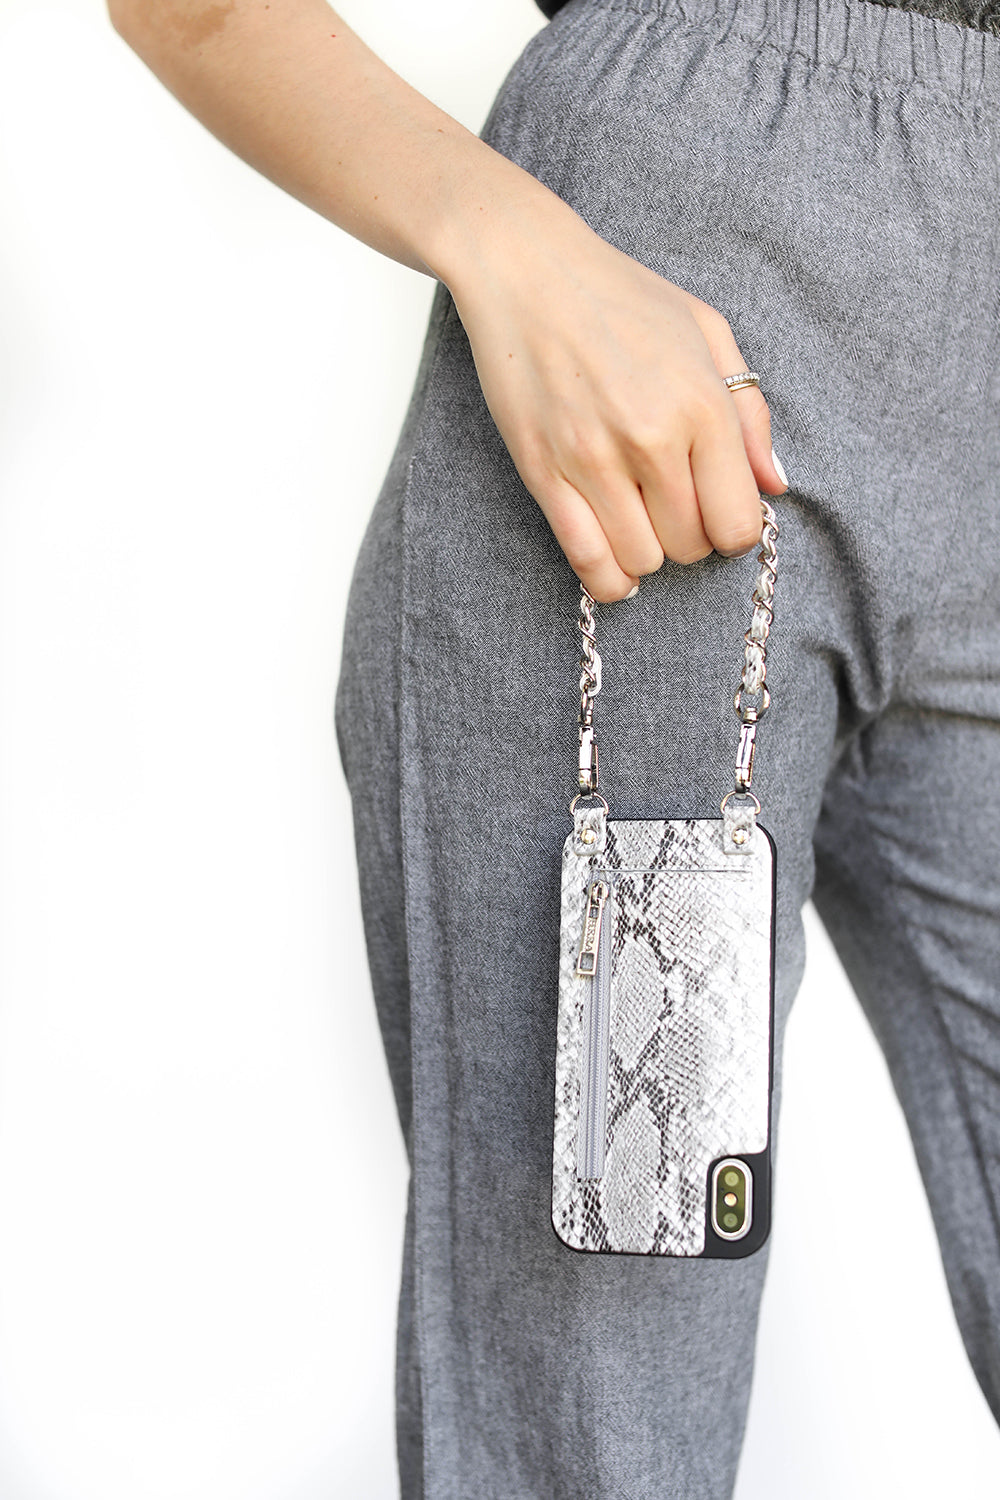 Collette - Wristlet (Pairs perfectly with STORM)